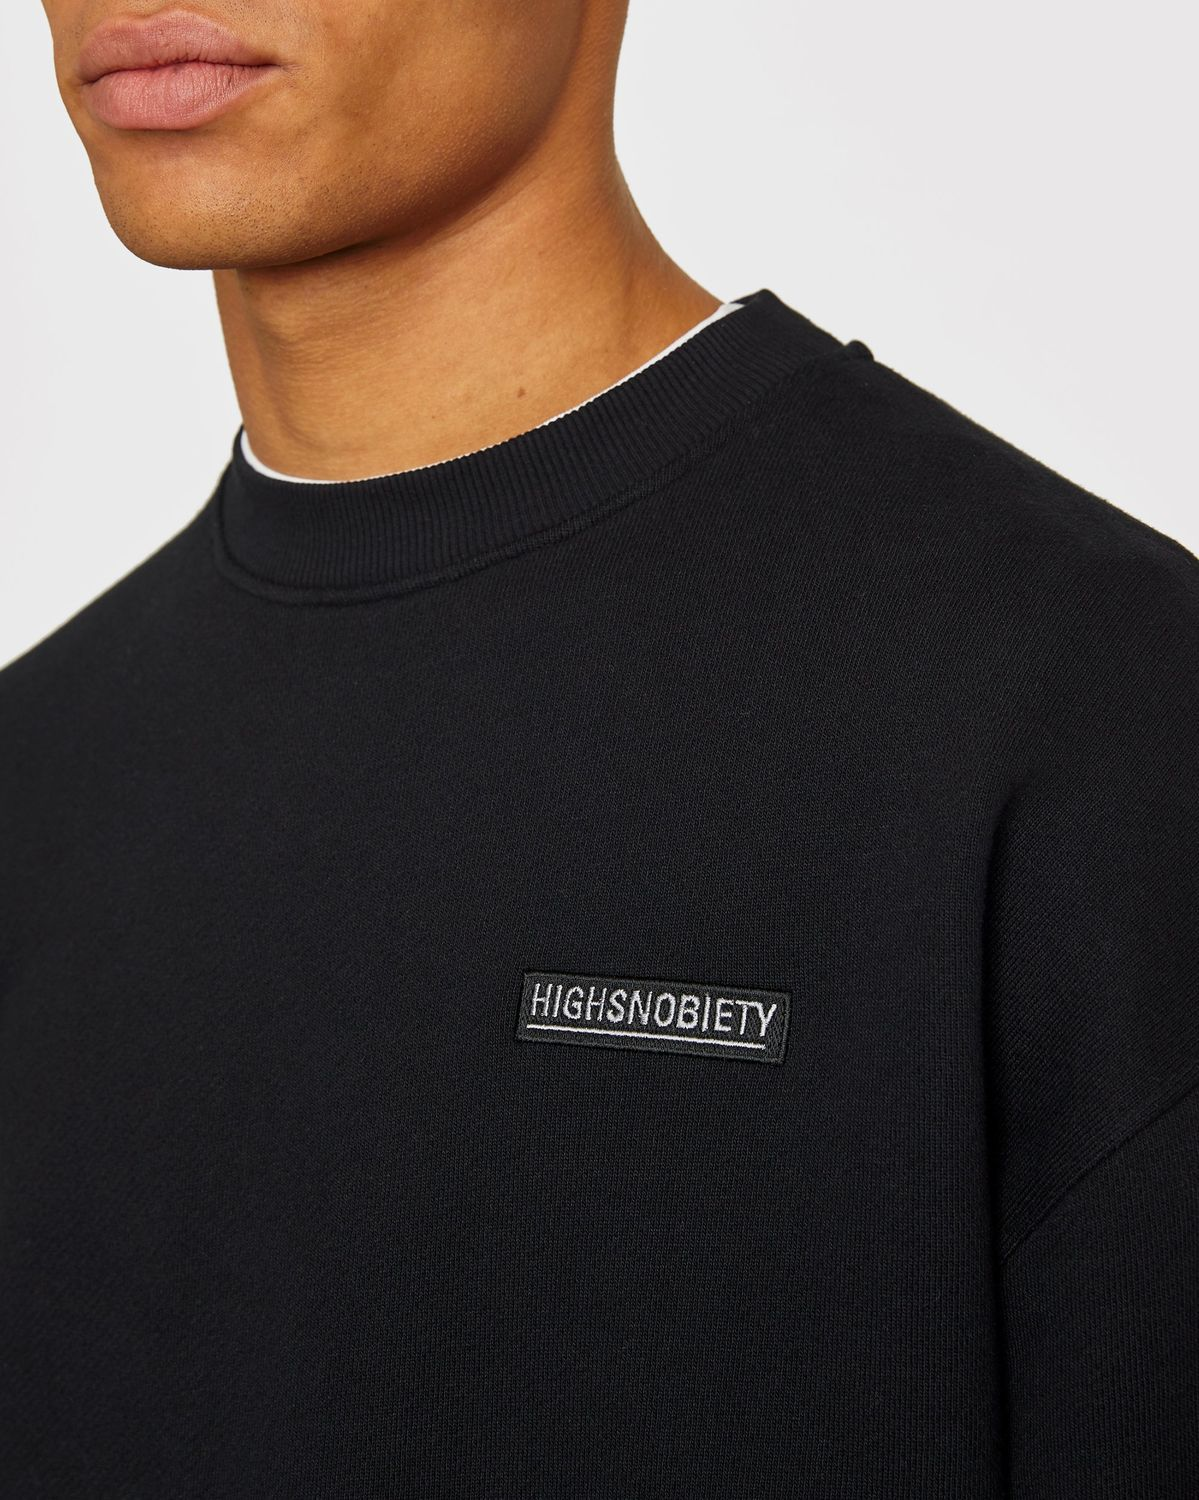 Highsnobiety Staples - Sweatshirt Black - Image 5